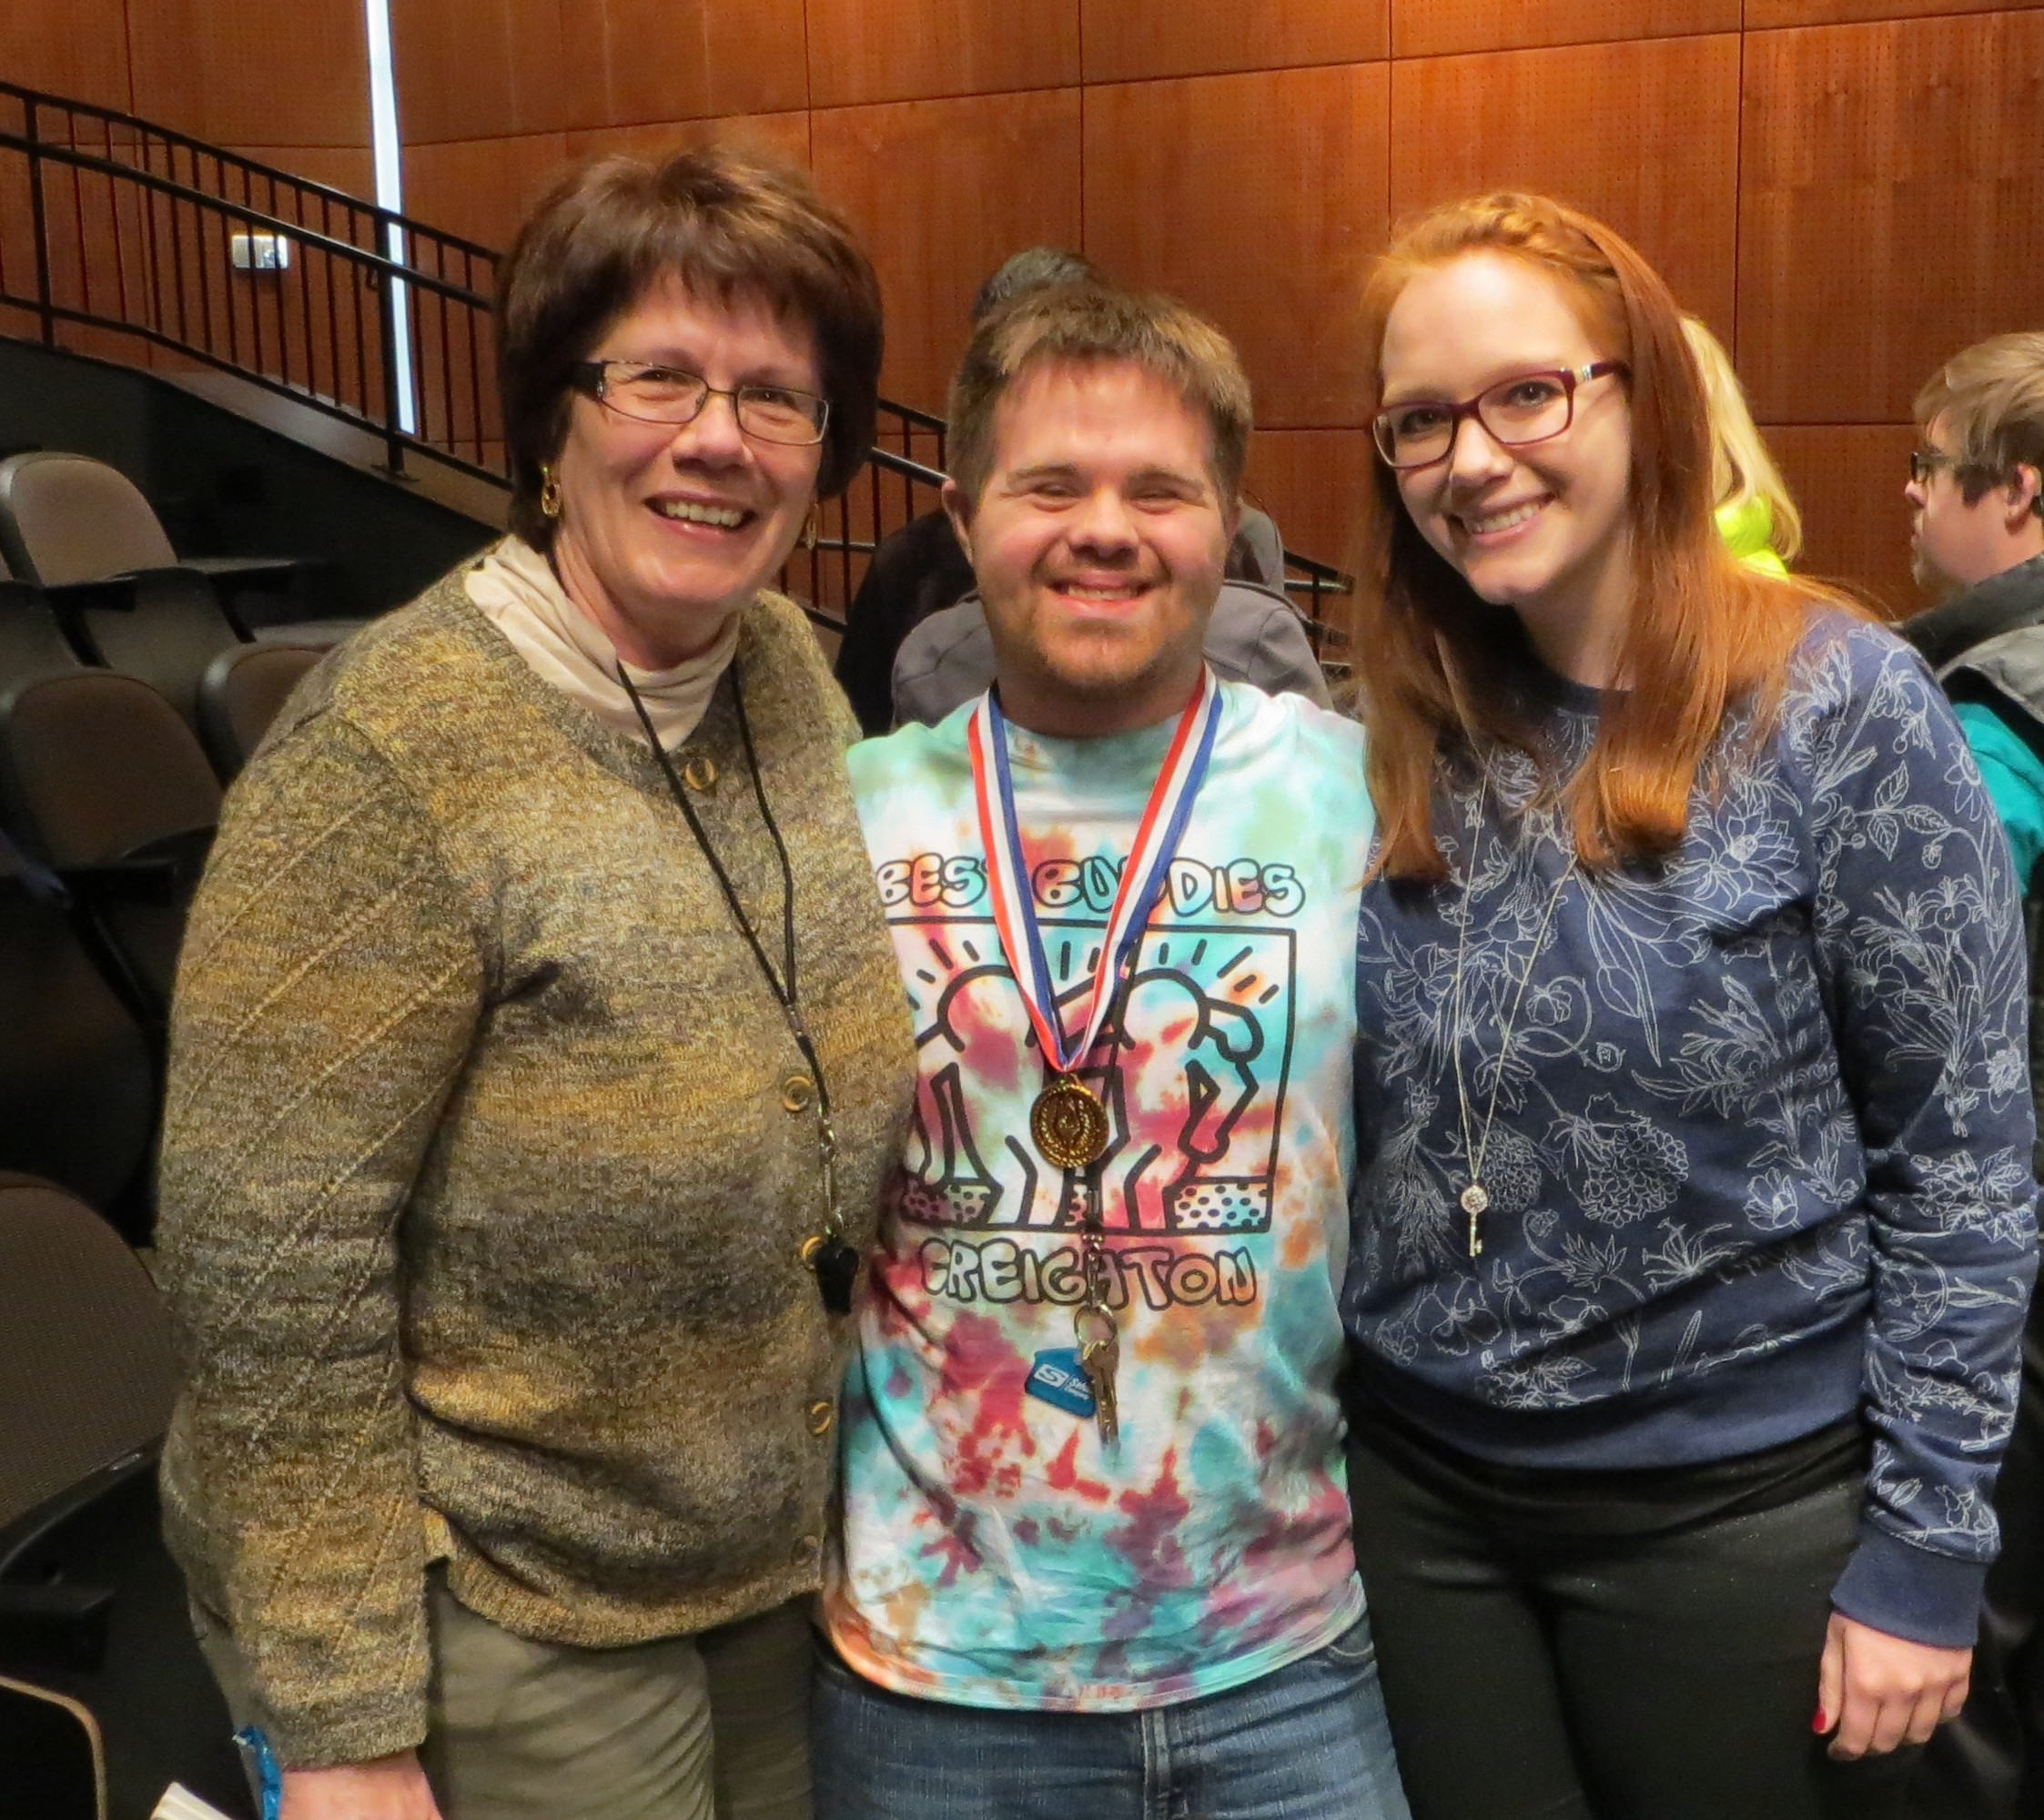 Kim and Justin with Justin's sister, Kristin, who has worked at MMI's Camp Munroe since 2010 and volunteered before that. She is now at the University of Washington in Seattle getting her master's in Speech Language Pathology. Justin's life influenced her career choice, her mother says.